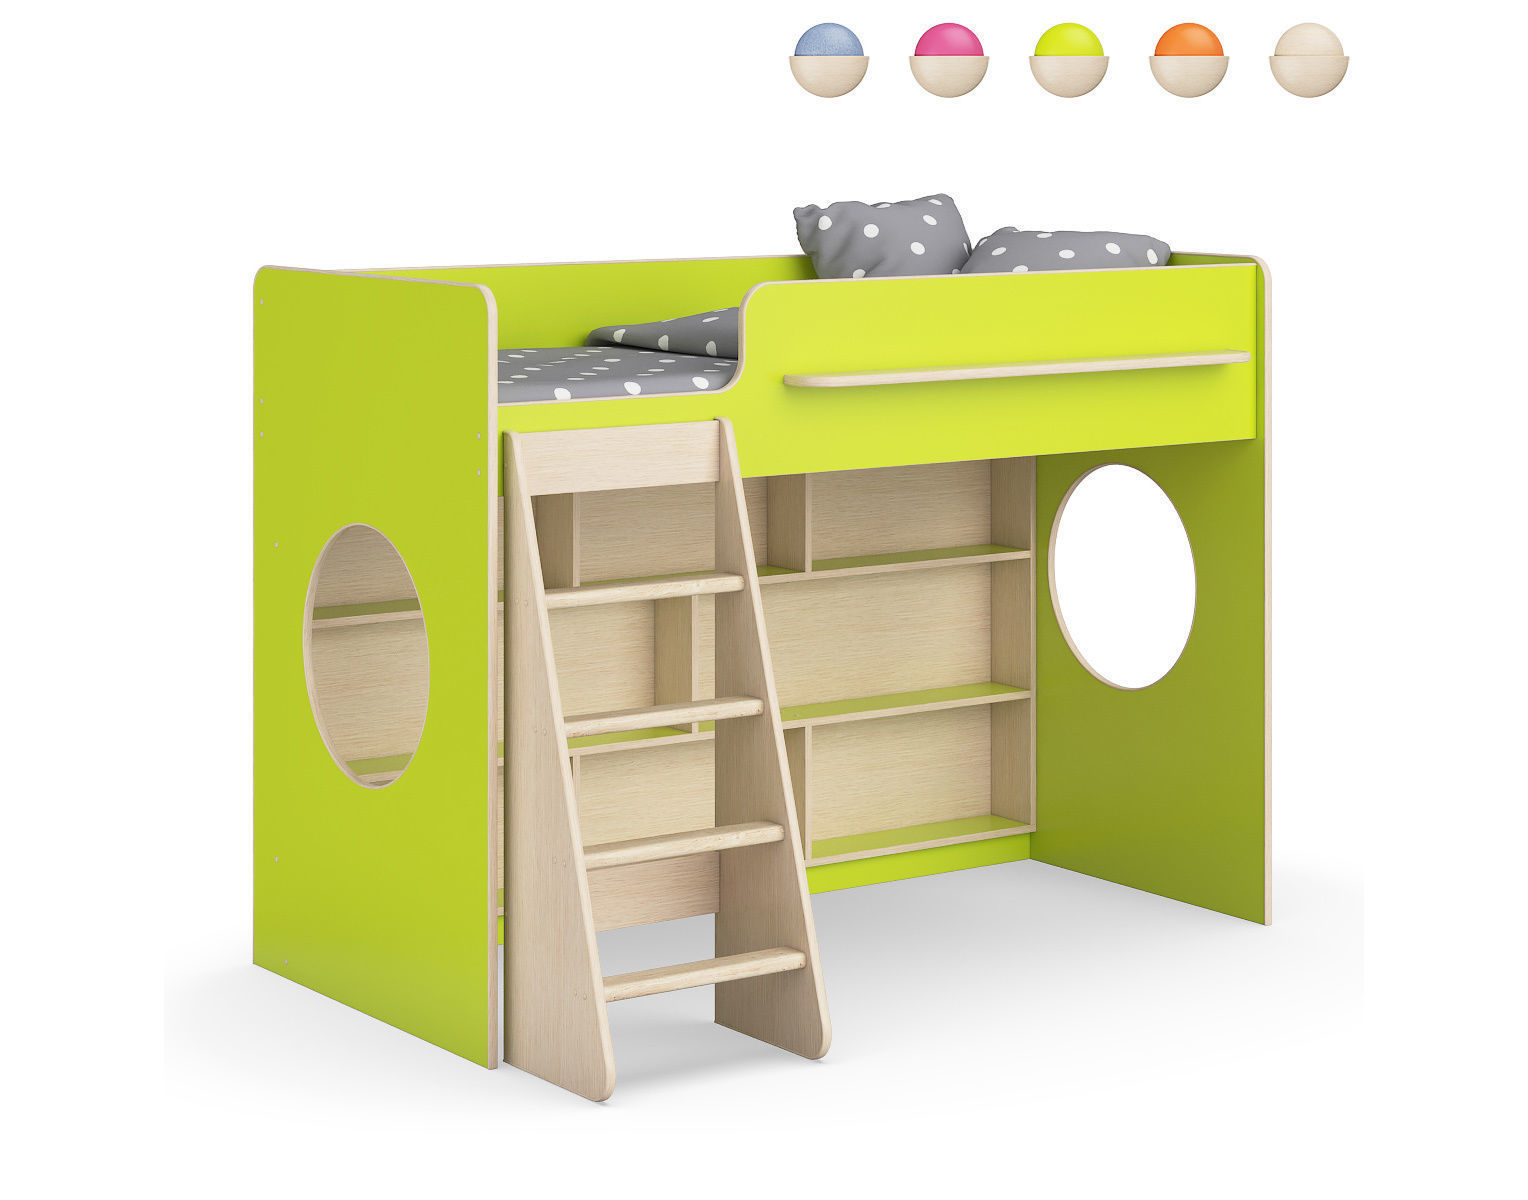 Legenda K26 with LP25 childrens modular bed